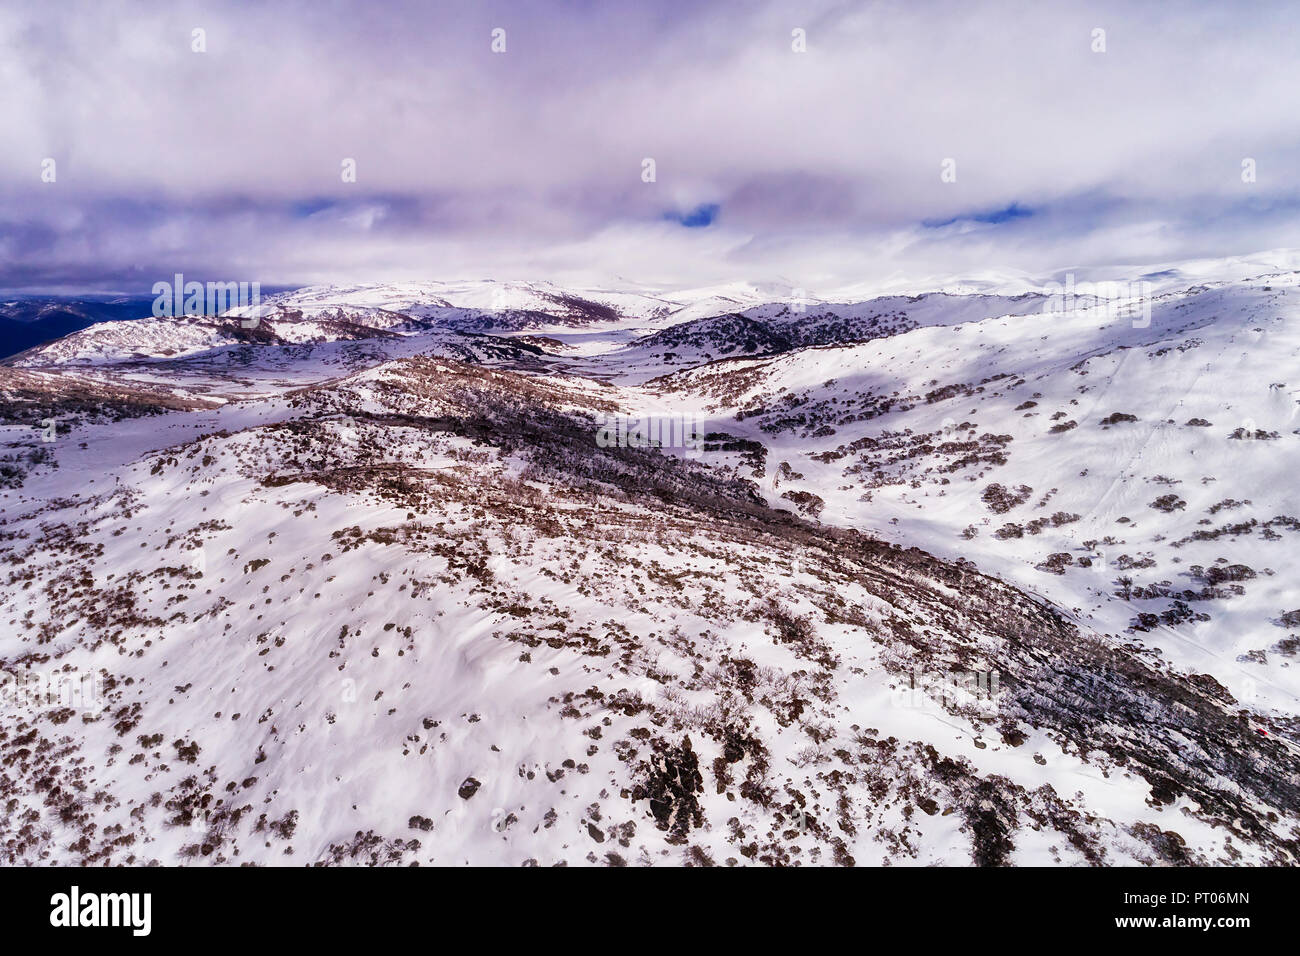 WHite snow slopes of the highest mountains in Australia under white clouds along Perisher valley with thick snow and ski resort sports tracks. - Stock Image